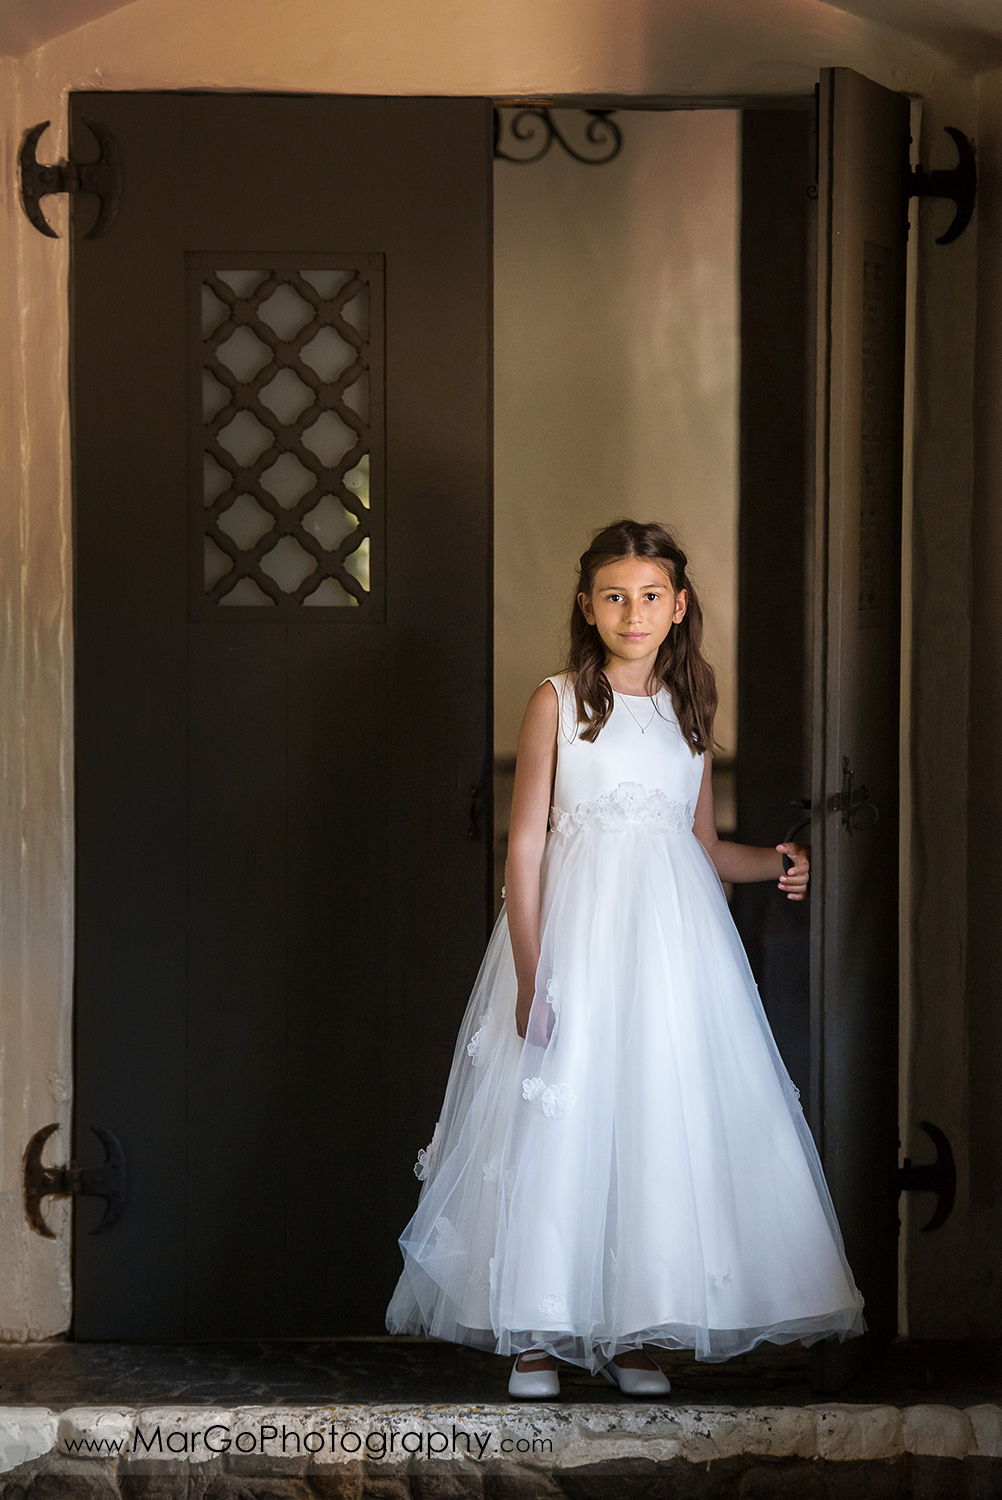 first communion girl in white dress walking through brown door at Cafe Wisteria in Menlo Park